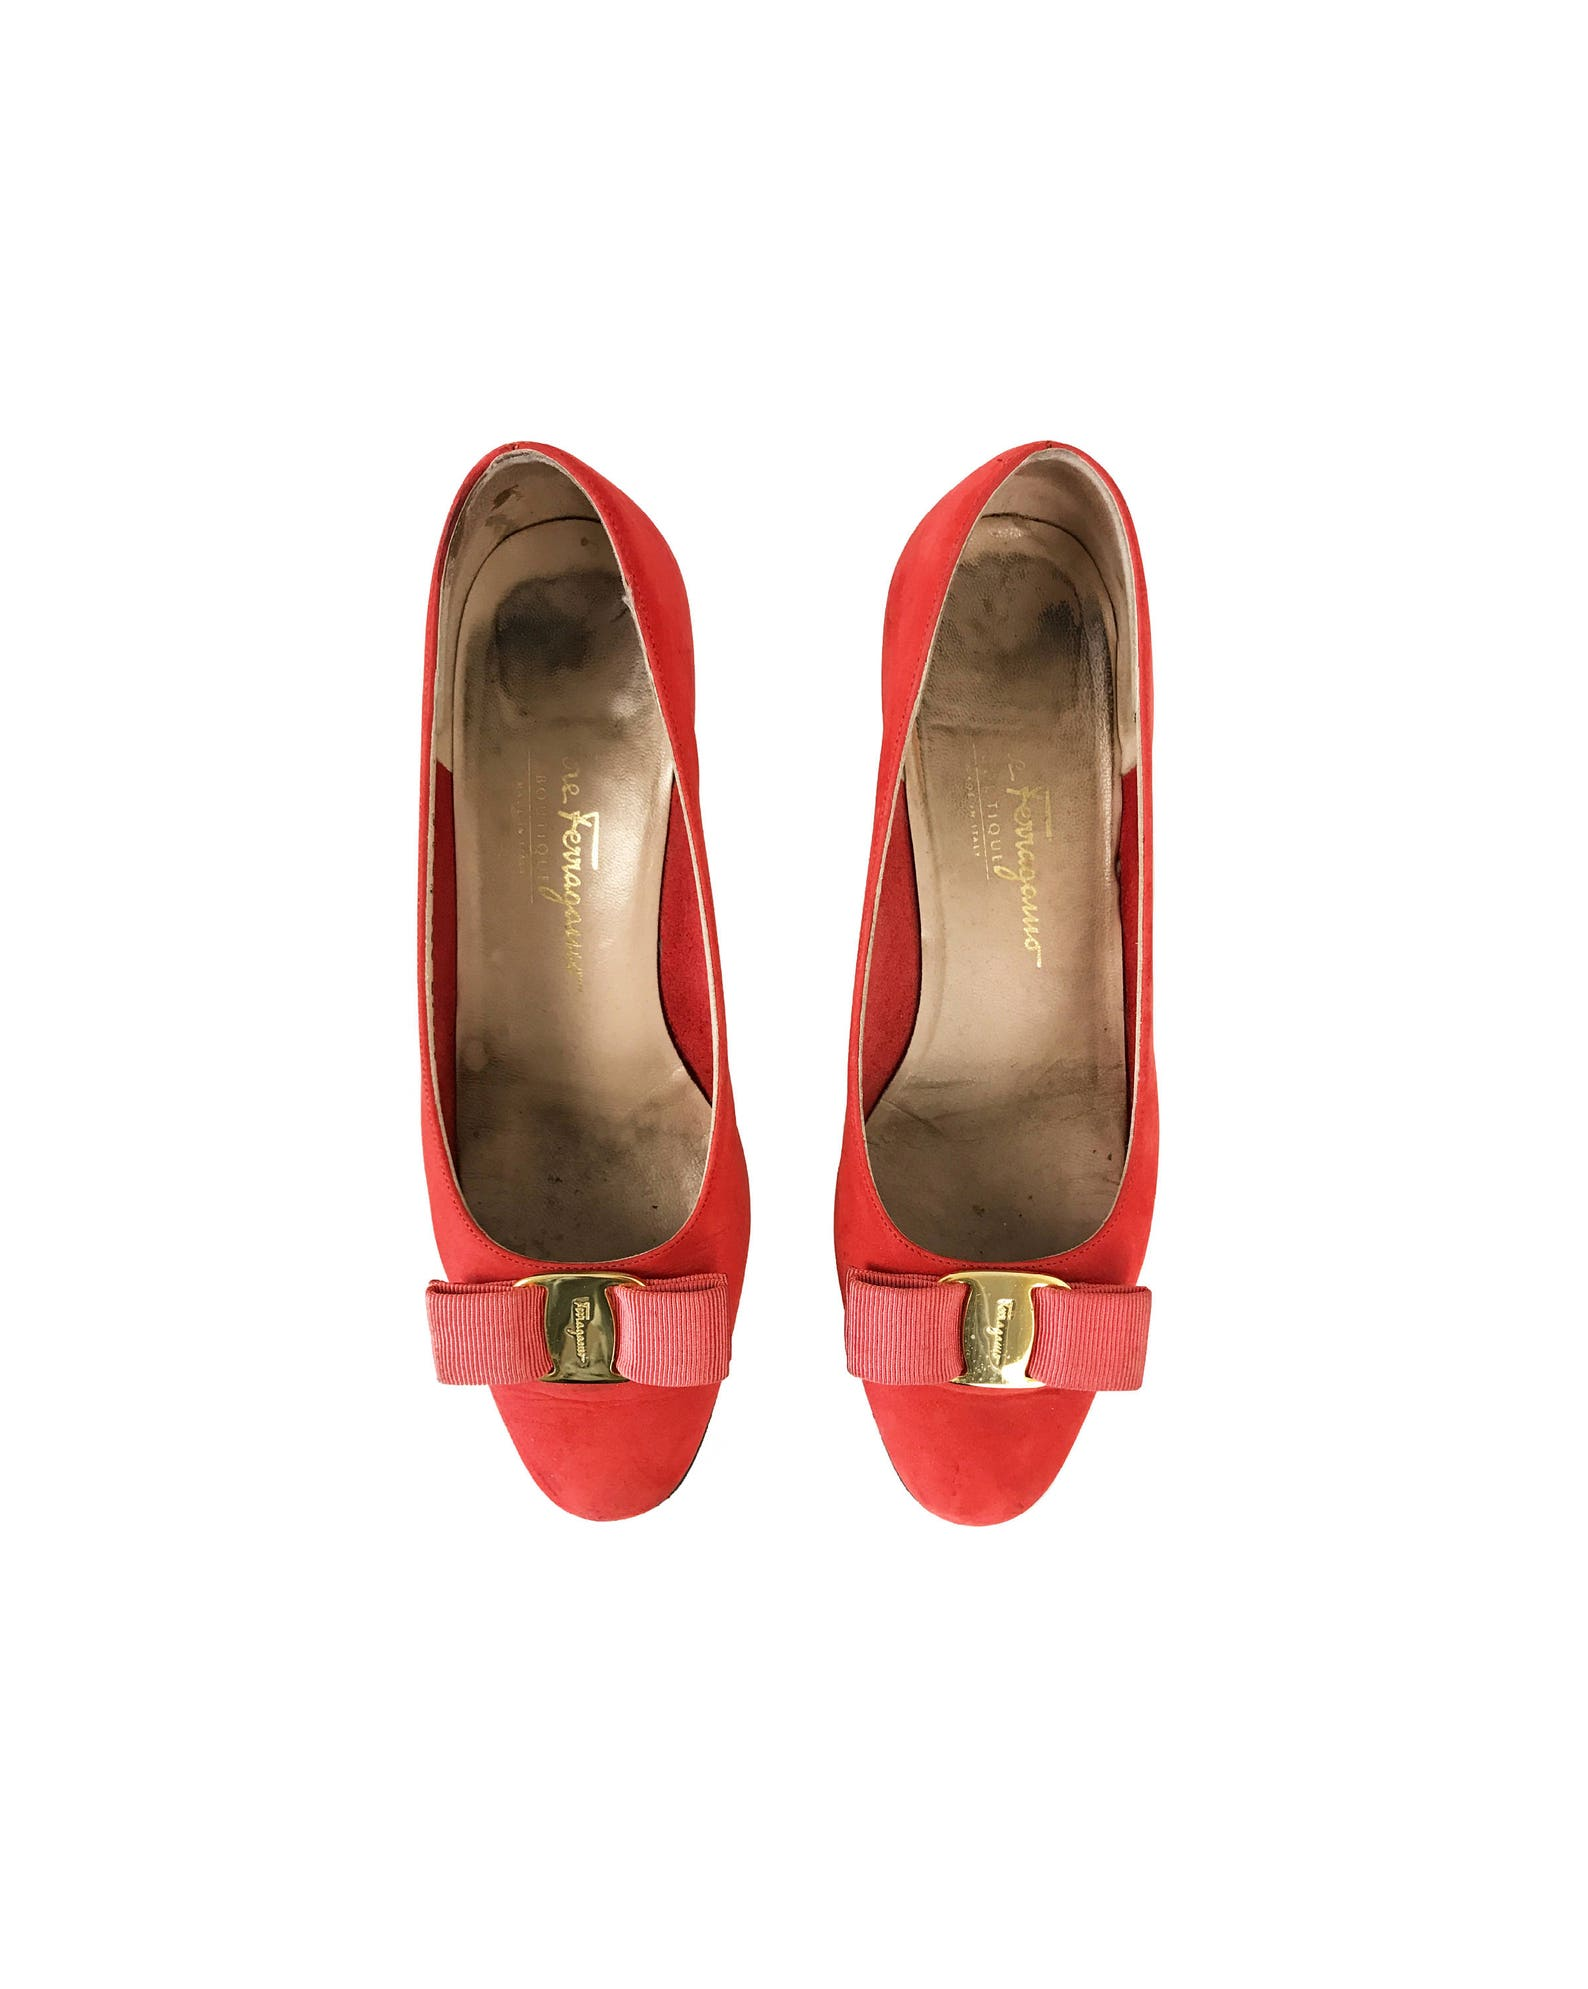 salvatore ferragamo vintage red suede bow logo flats monogram ballet shoes slippers sz 7.5